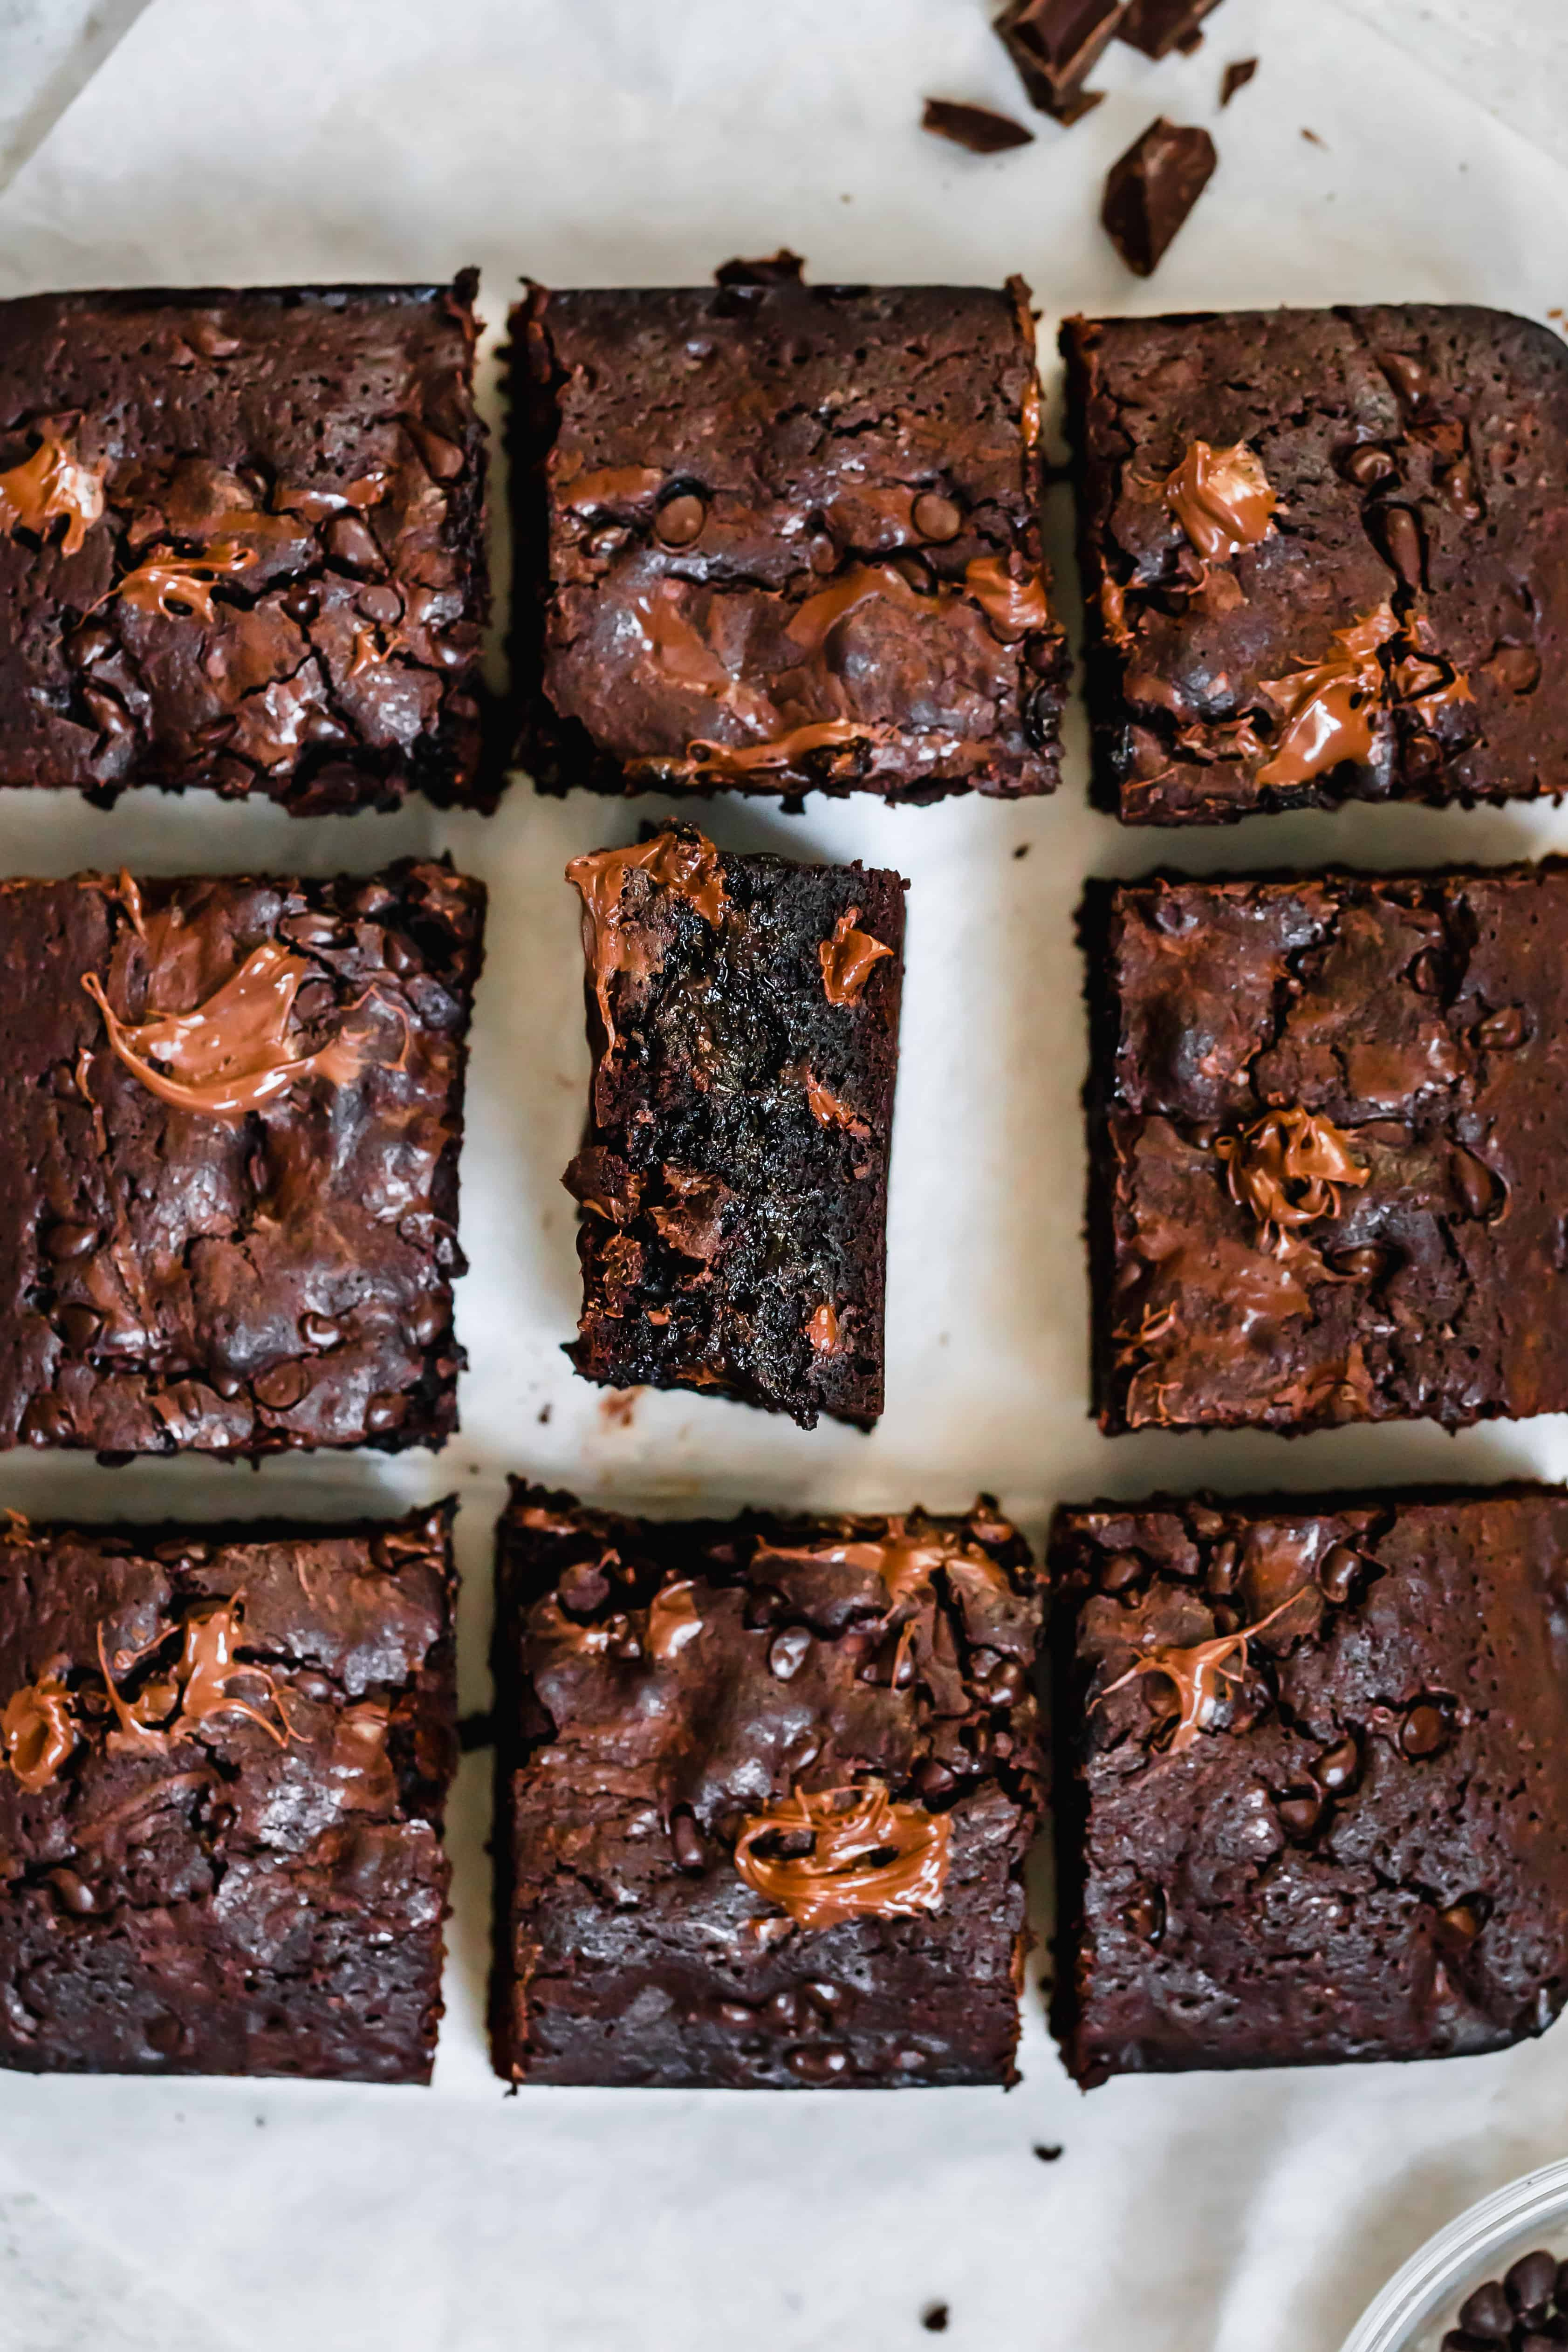 Nine Brownies Arranged in a Square with the Middle One on its Side